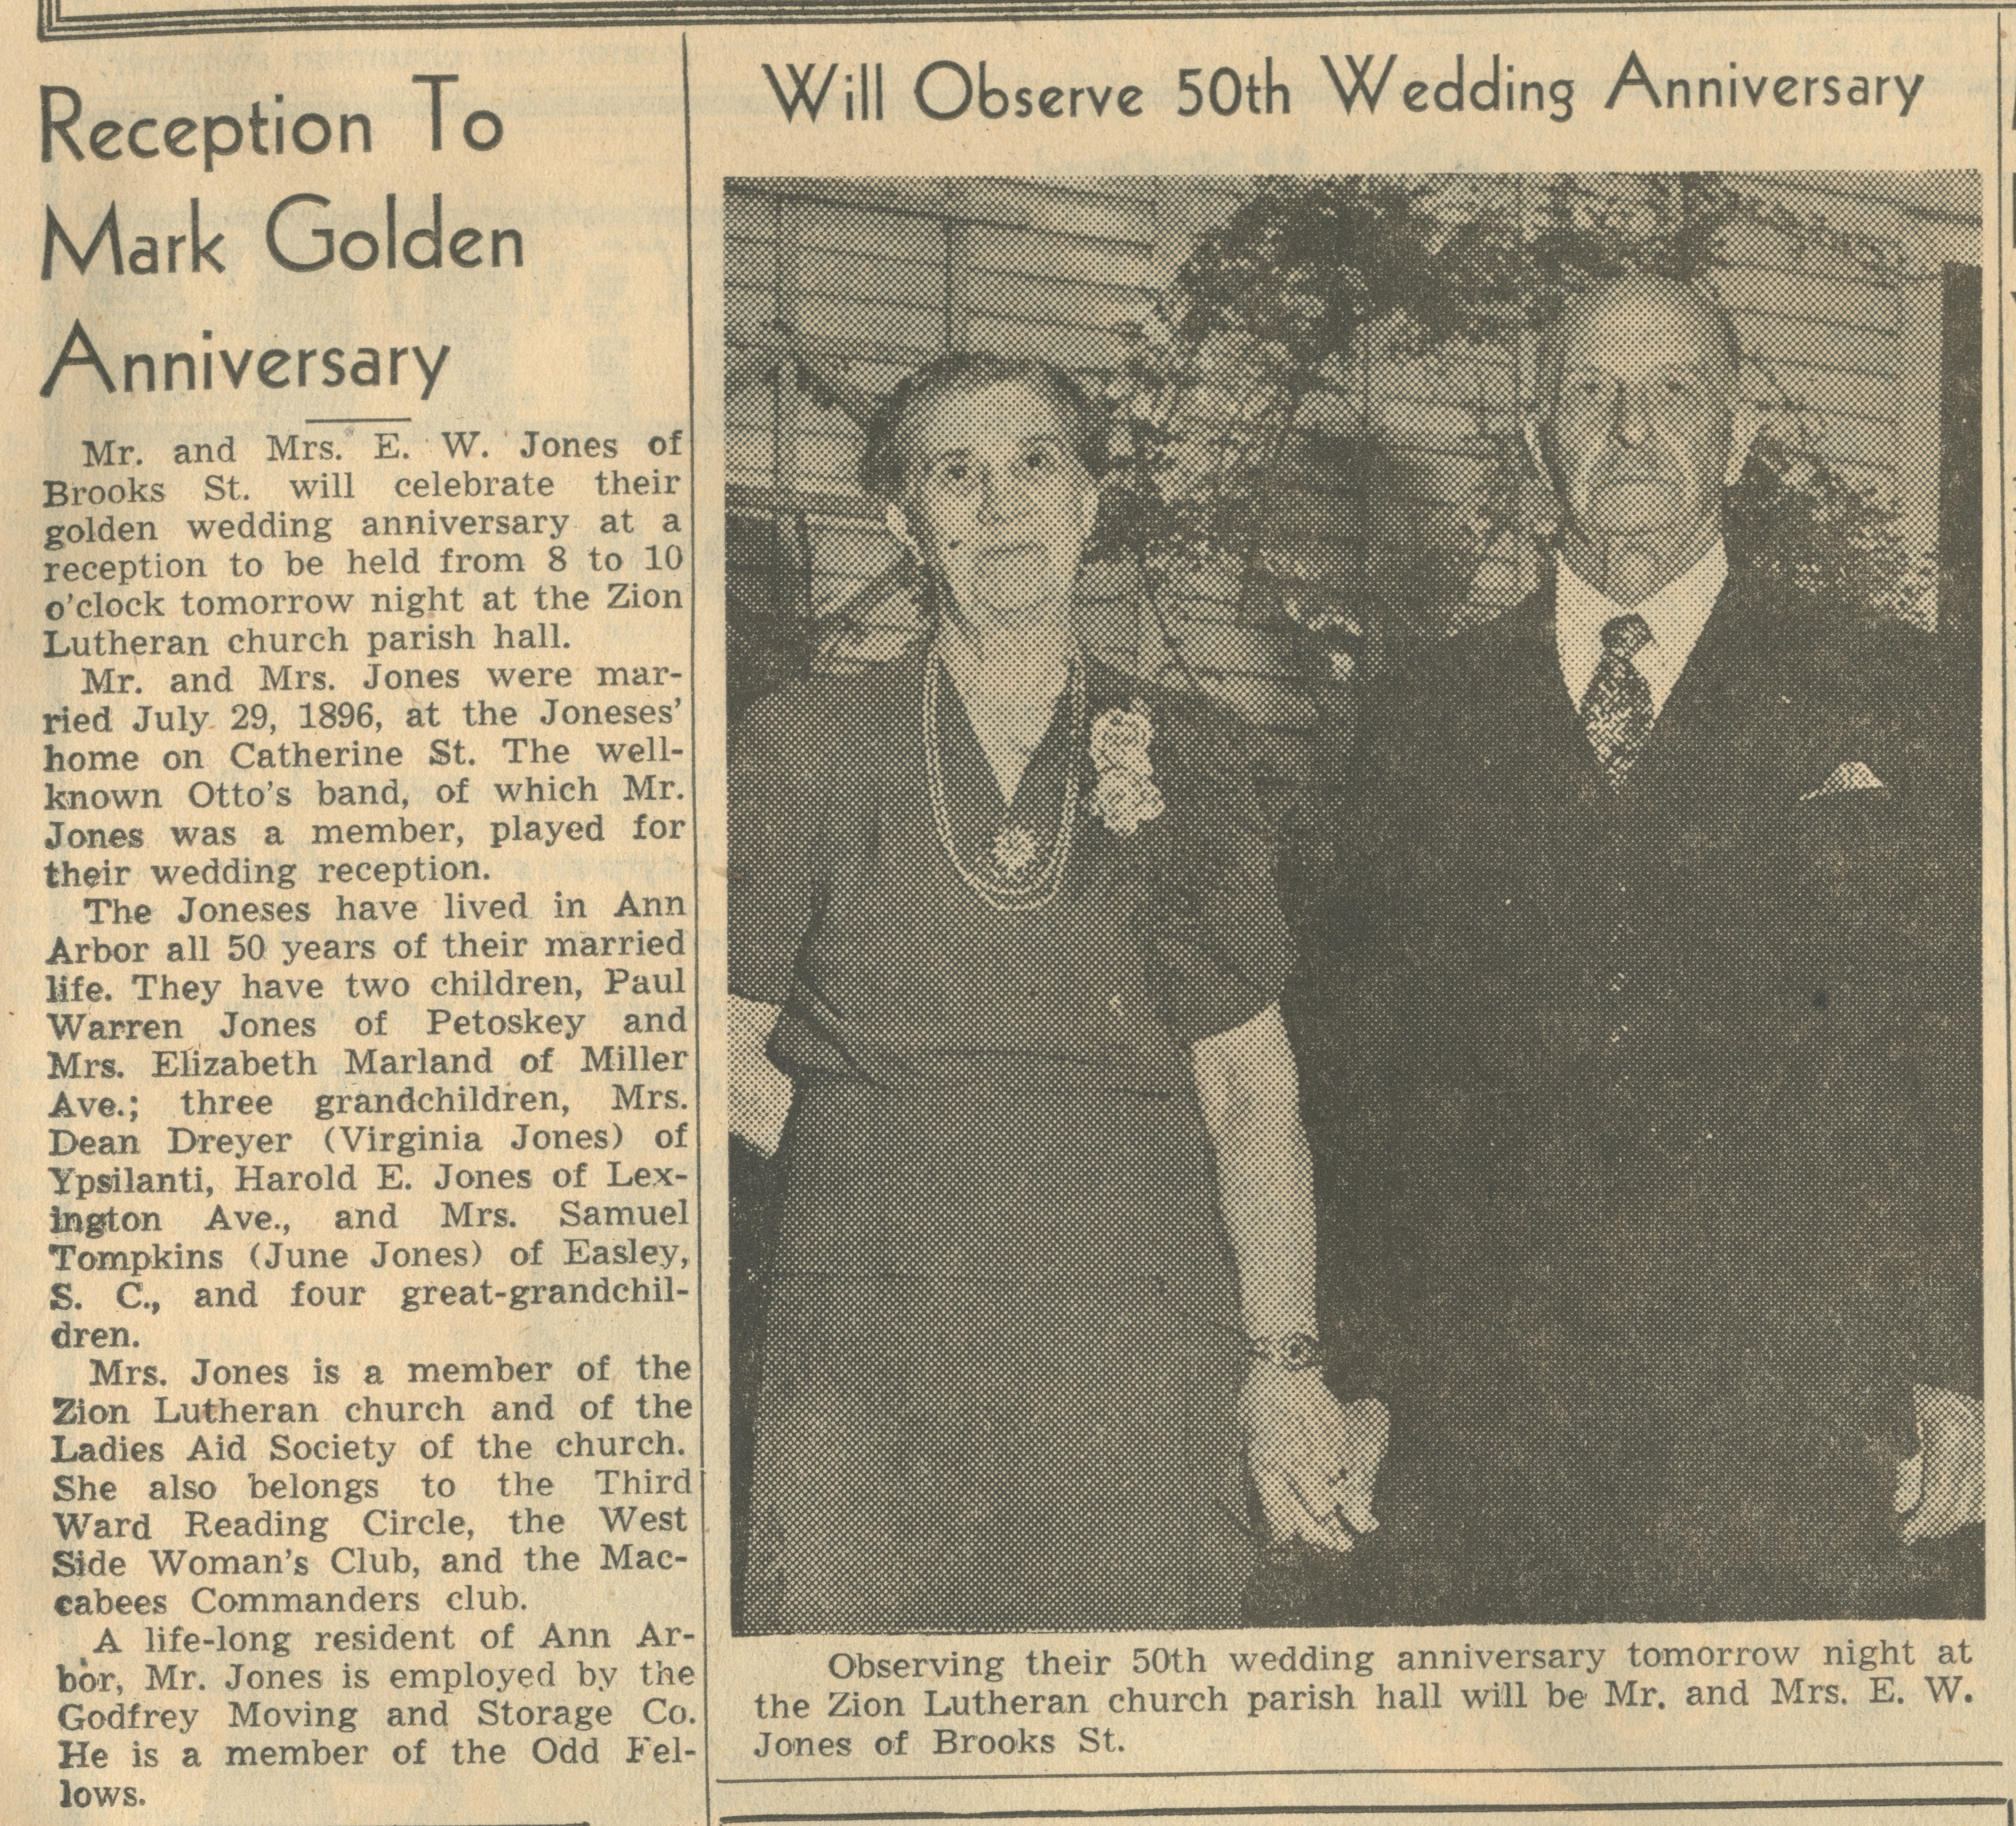 Reception To Mark Golden Anniversary image